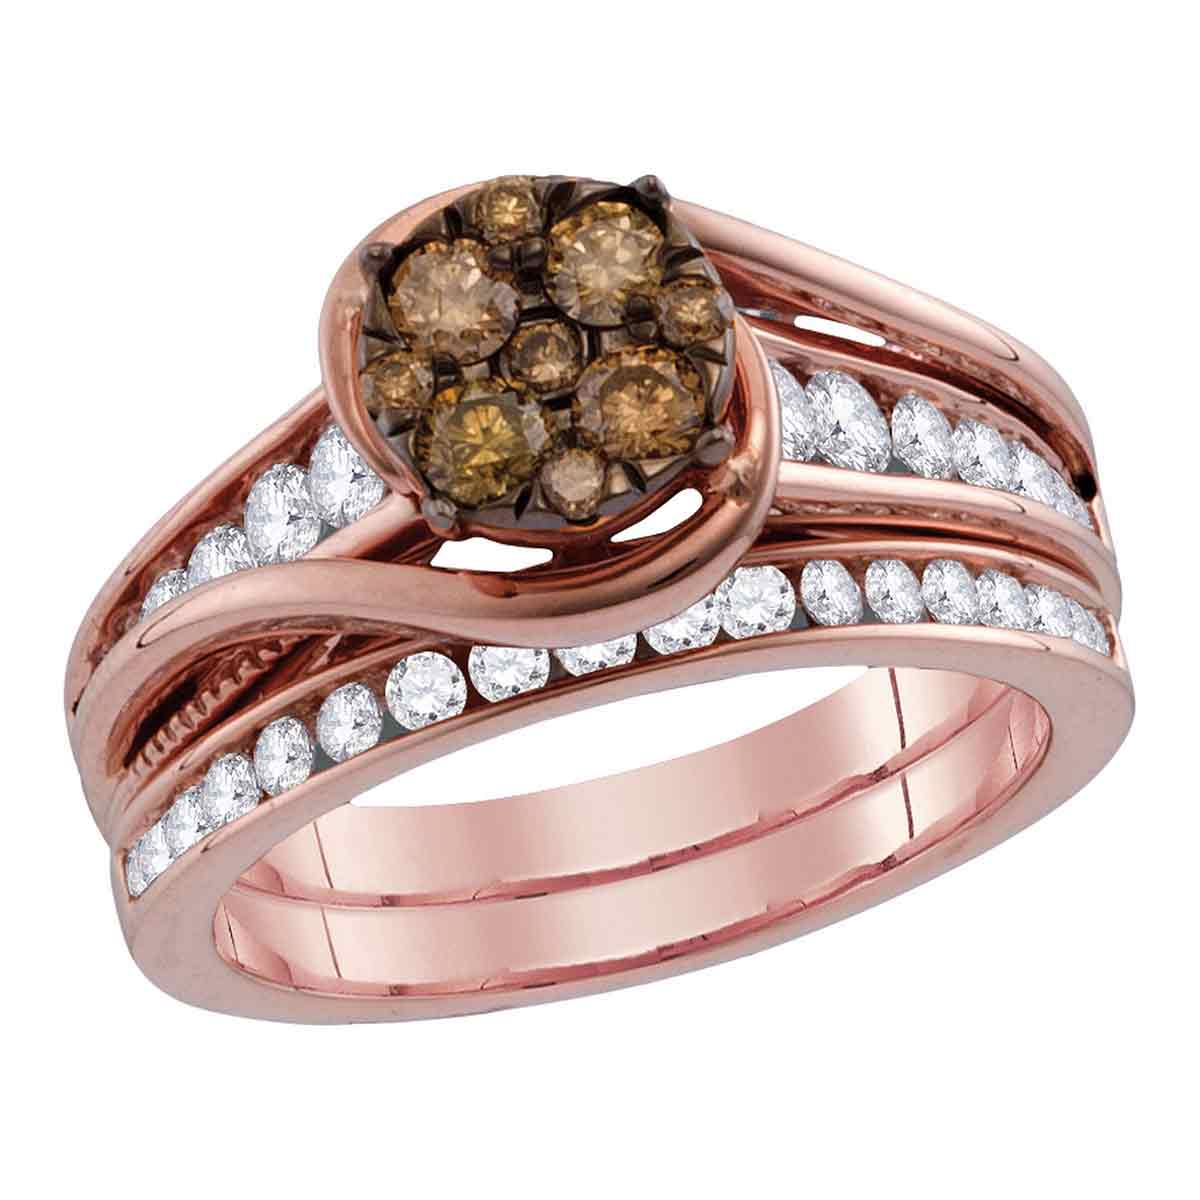 Colored Diamond Wedding Ring Sets: 14kt Rose Gold Womens Round Cognac-brown Colored Diamond